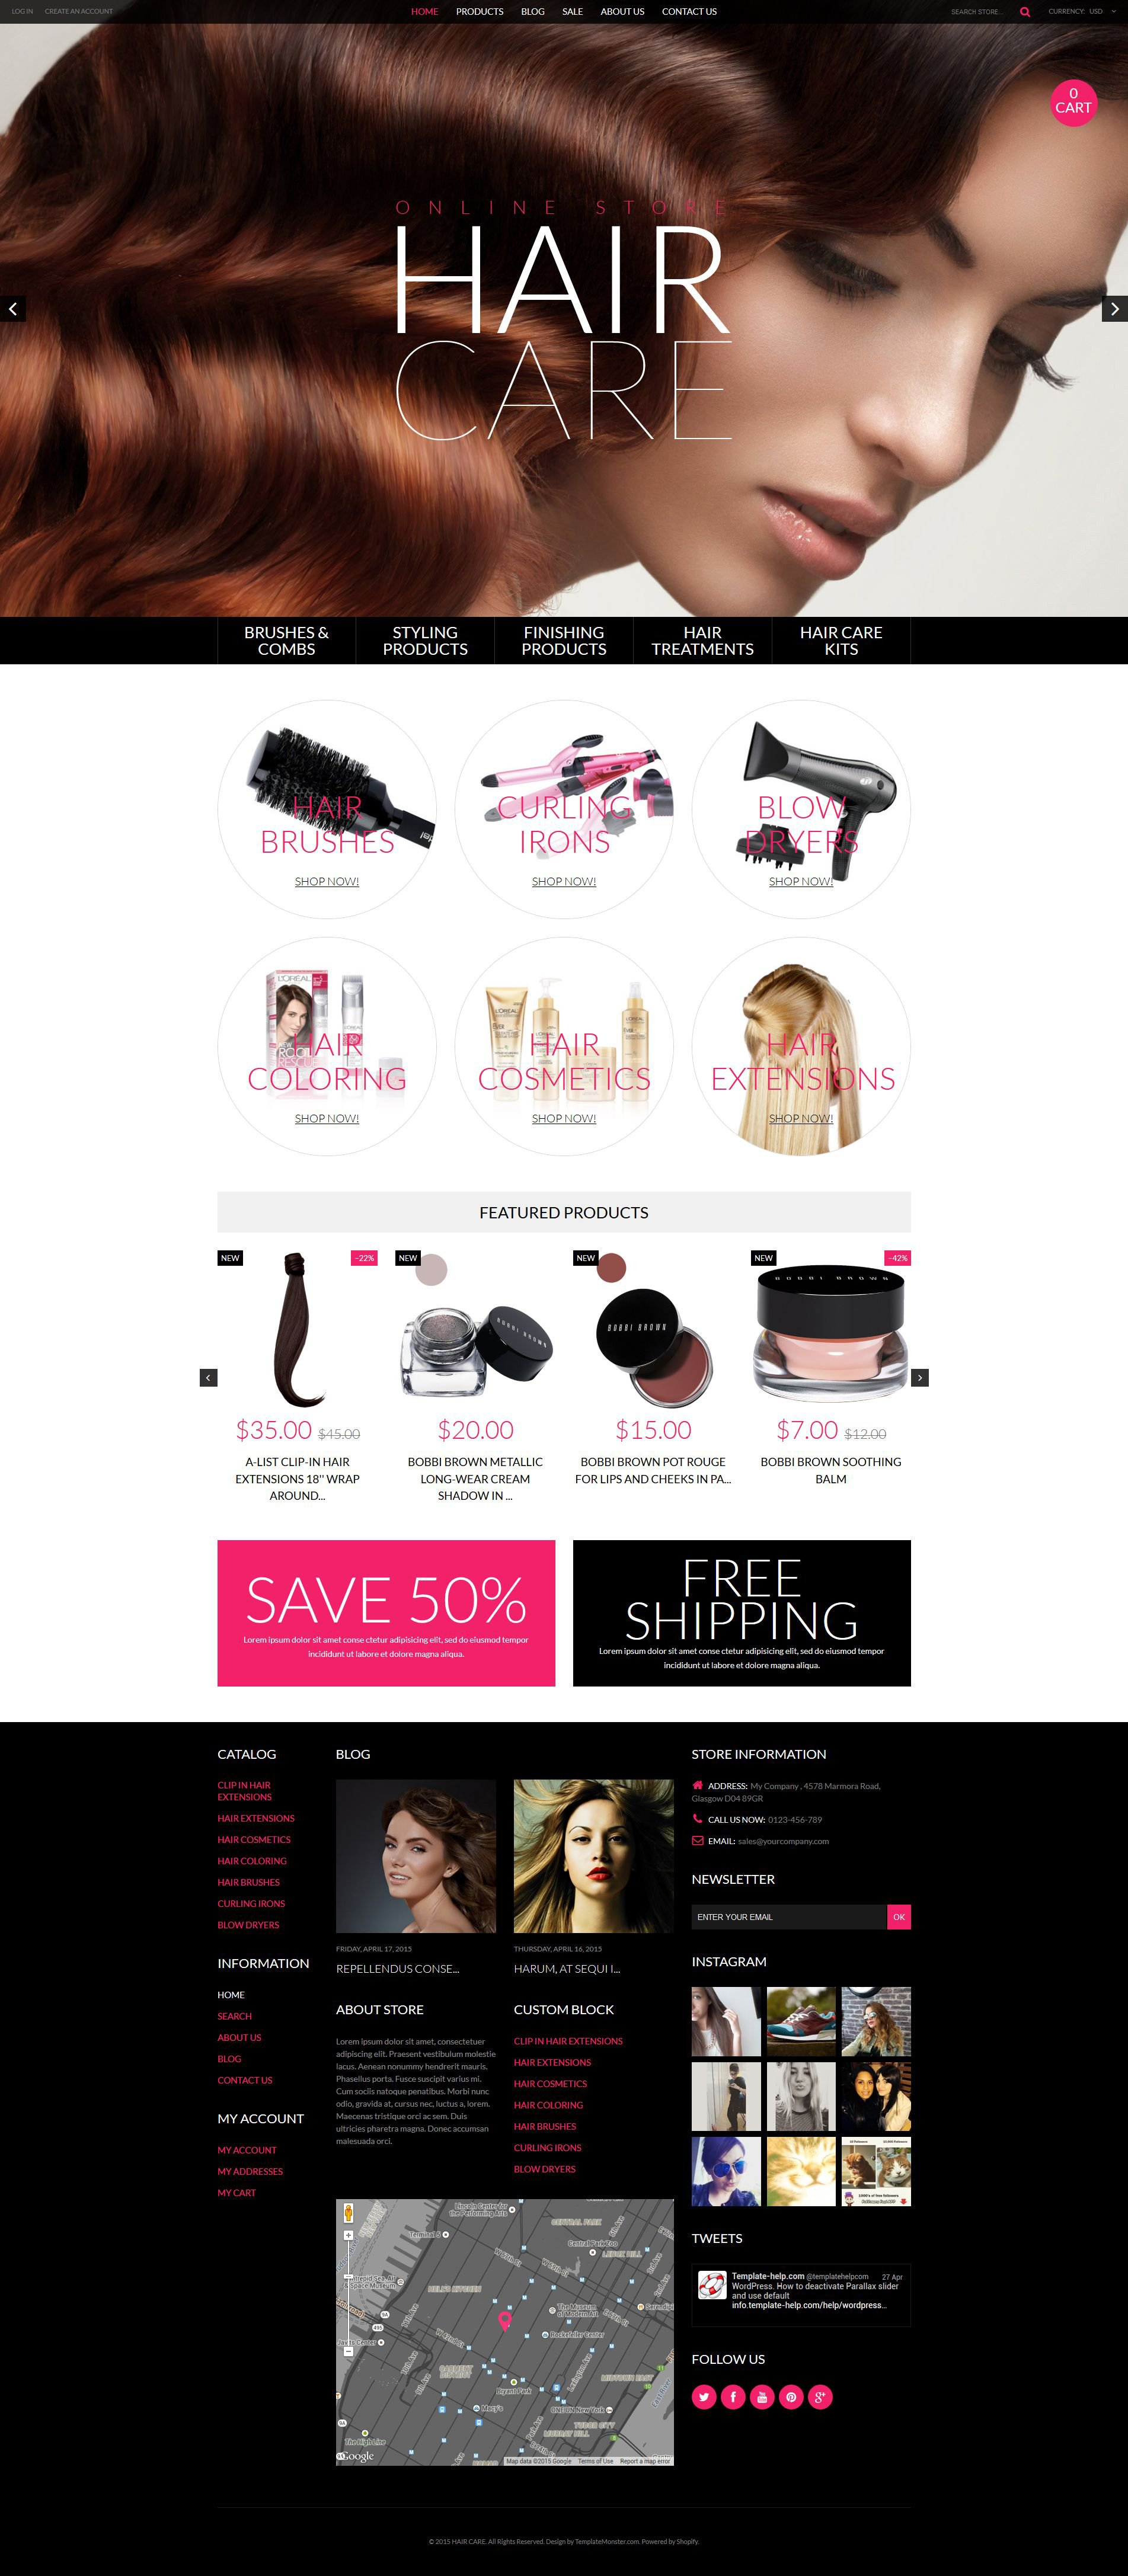 The Hair Care Shopify Design 53785, one of the best Shopify themes of its kind (beauty, most popular), also known as hair care Shopify template, extensions Shopify template, clip Shopify template, weave Shopify template, bonded Shopify template, shopping cart Shopify template, magento Shopify template, products Shopify template, categories store Shopify template, shop Shopify template, accessories and related with hair care, extensions, clip, weave, bonded, shopping cart, magento, products, categories store, shop, accessories, etc.